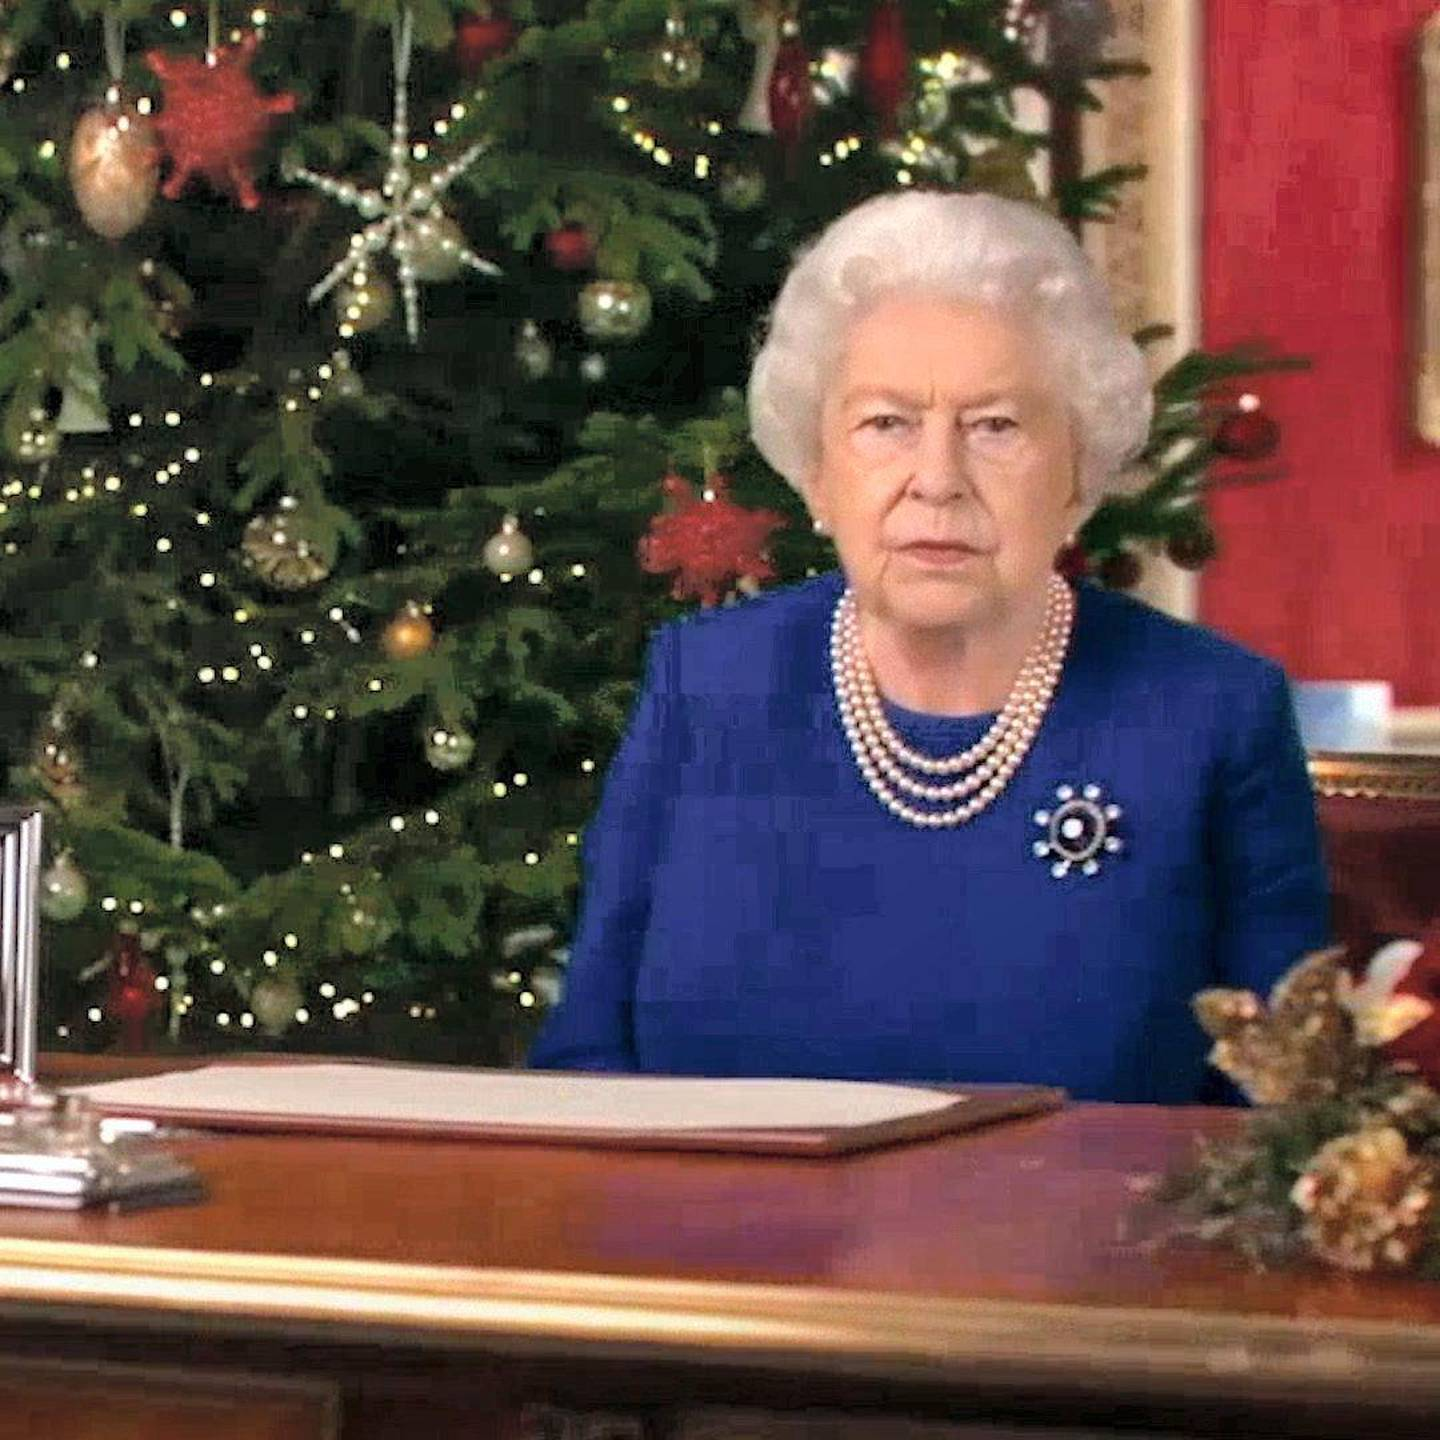 Theyre related to a story we are doing on a deepfake of the Queens Christmas message.